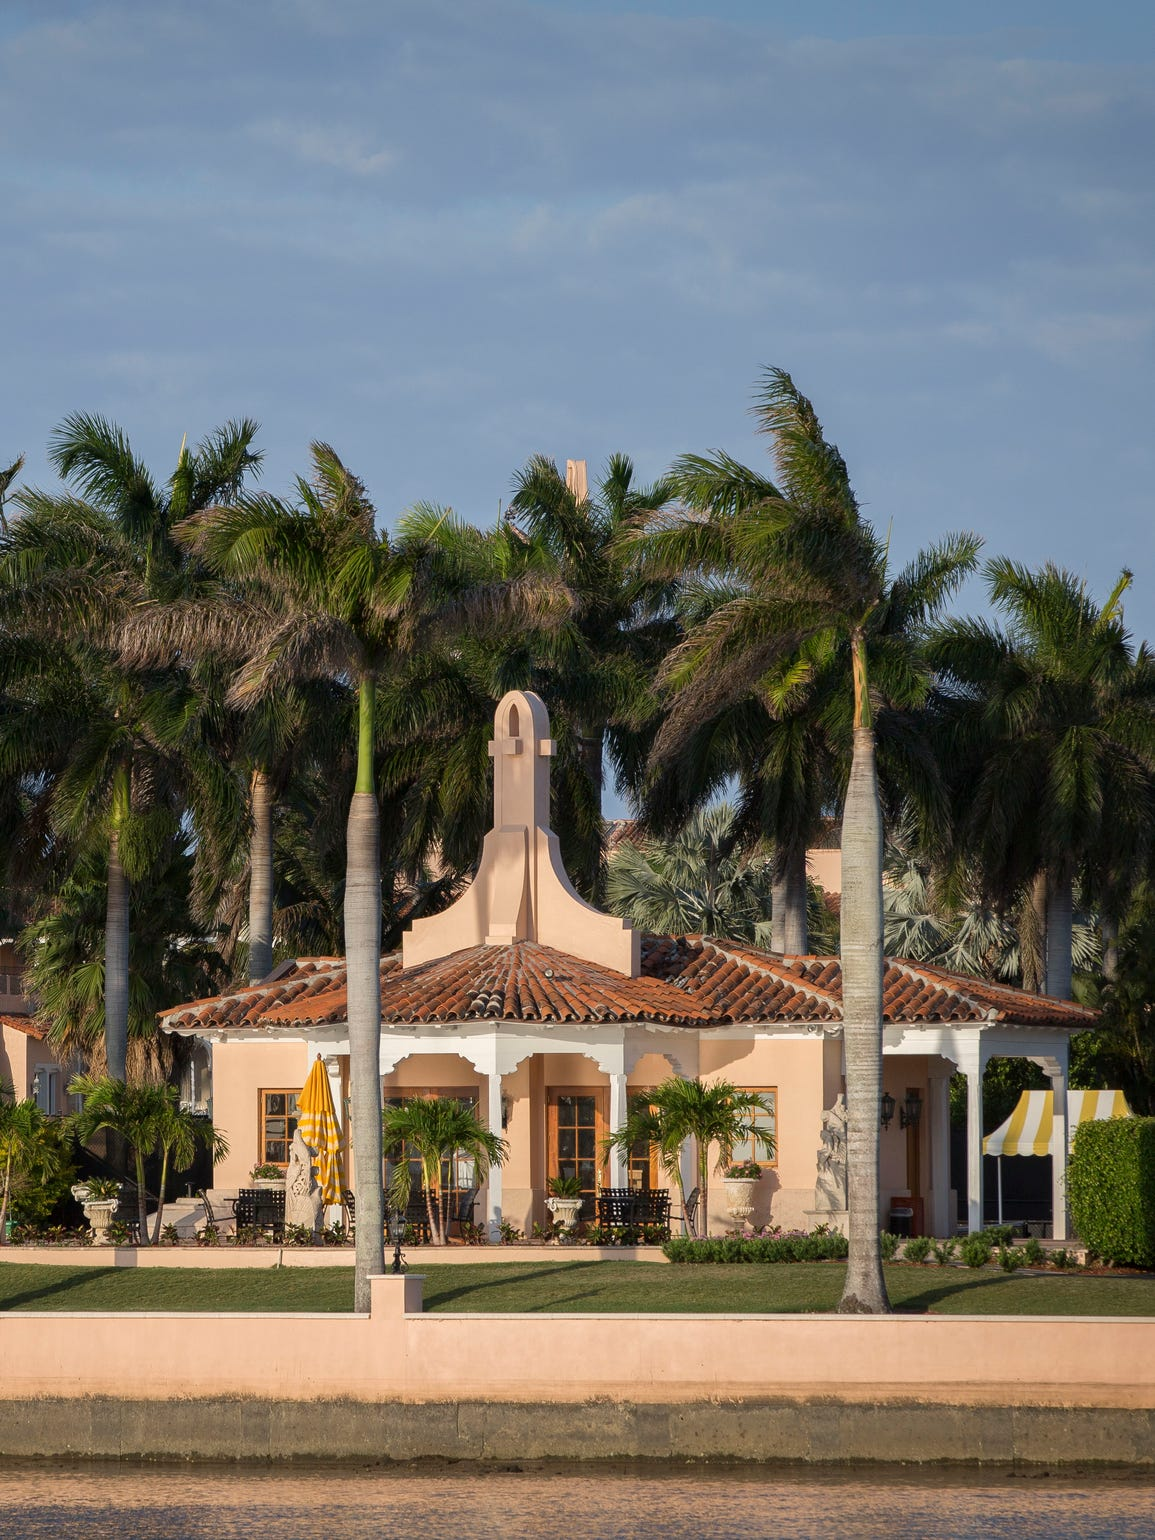 A view of Donald Trump's club at Mar-A-Lago, a few